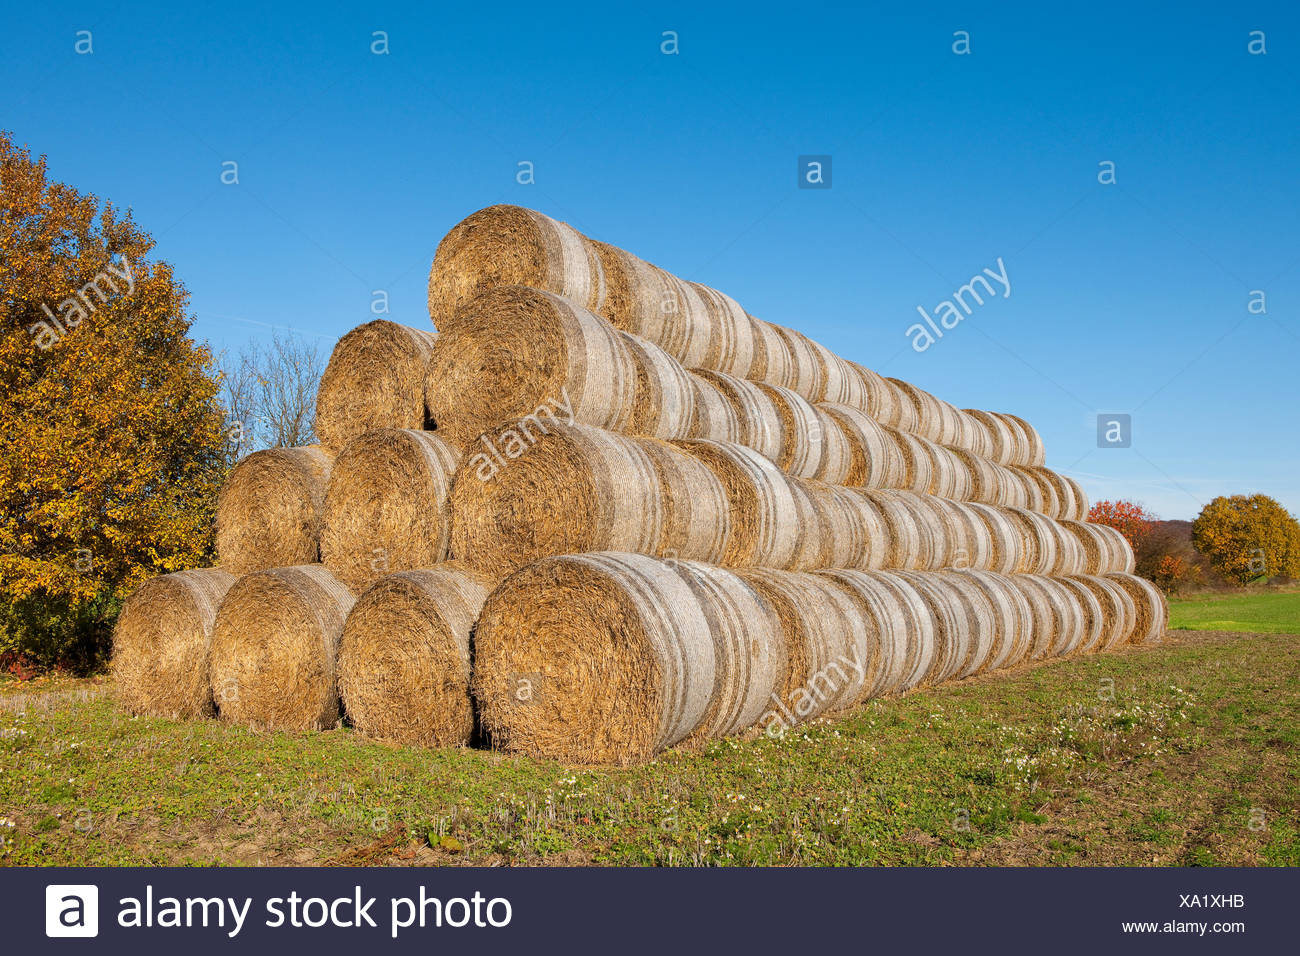 Stacked straw bales, Thuringia, Germany - Stock Image